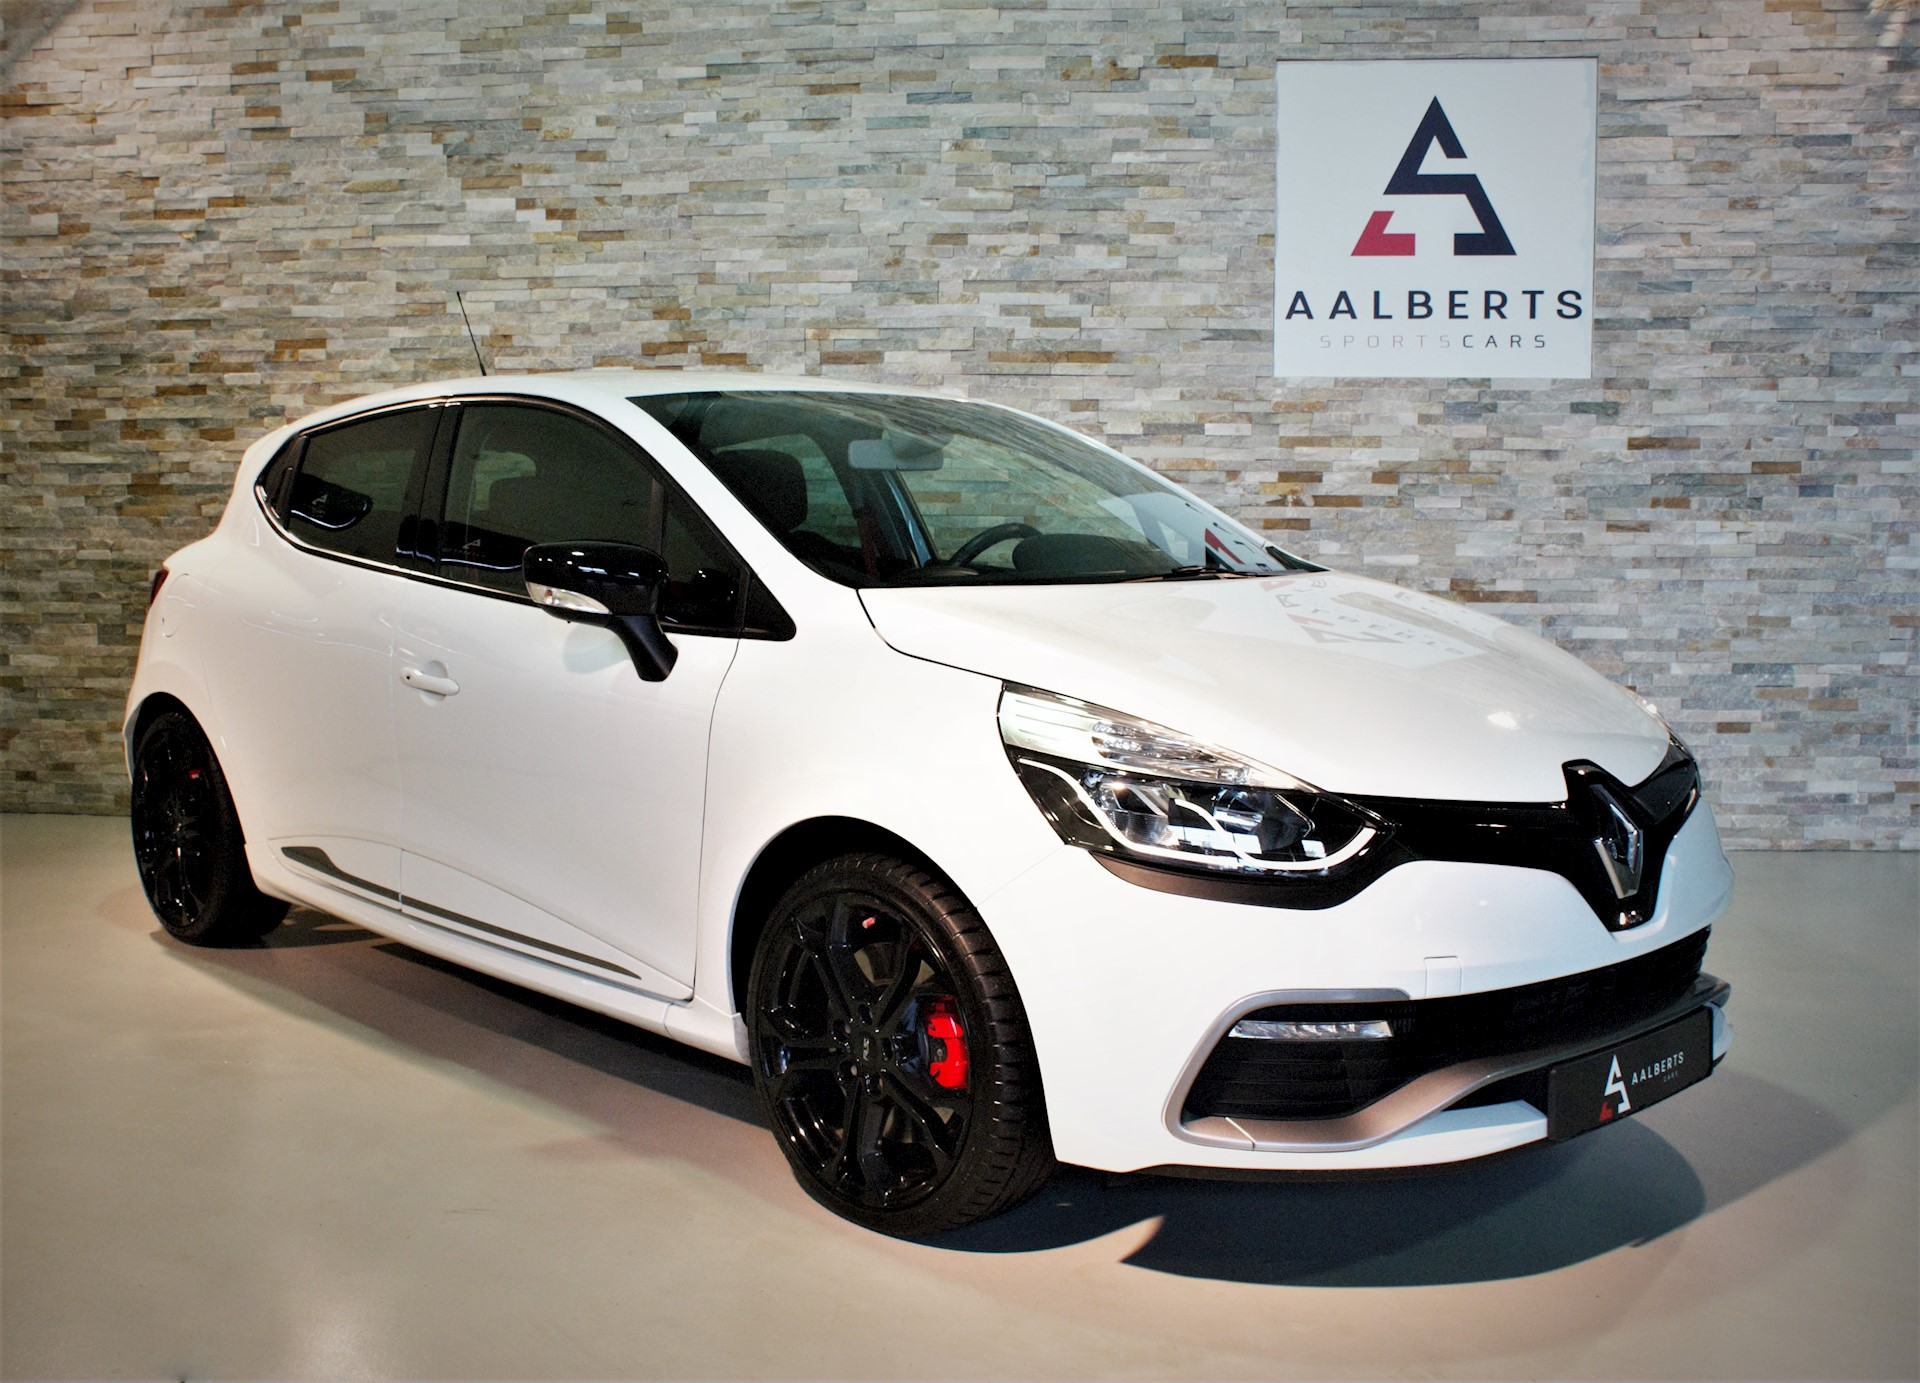 Tweedehands Renault Clio RS occasion